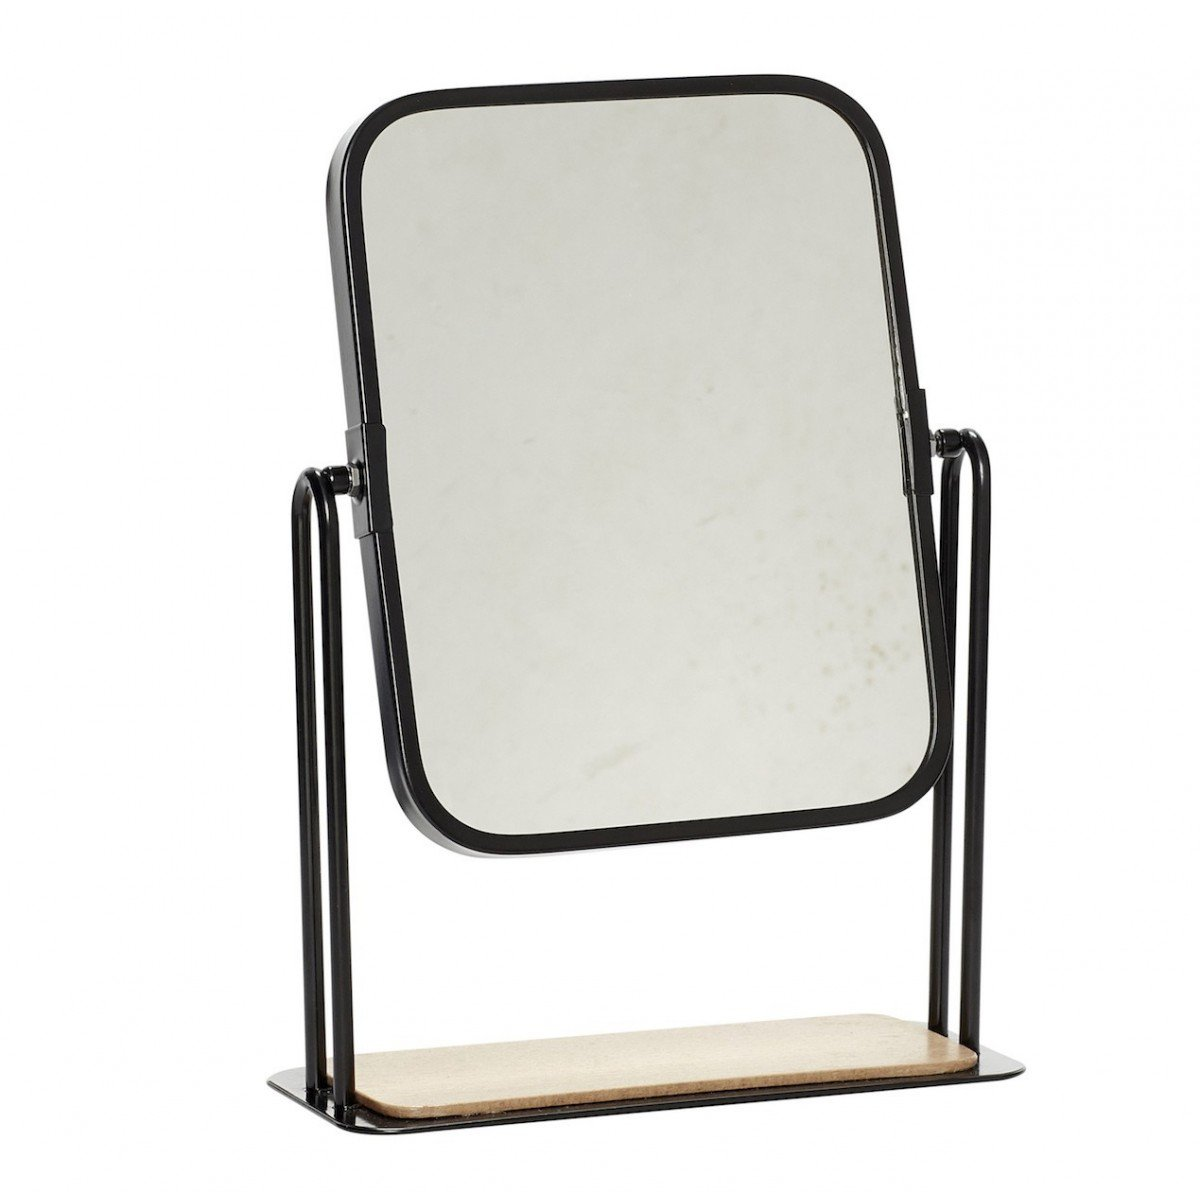 Miroir de table rectangulaire noir h bsch for Miroir noir review